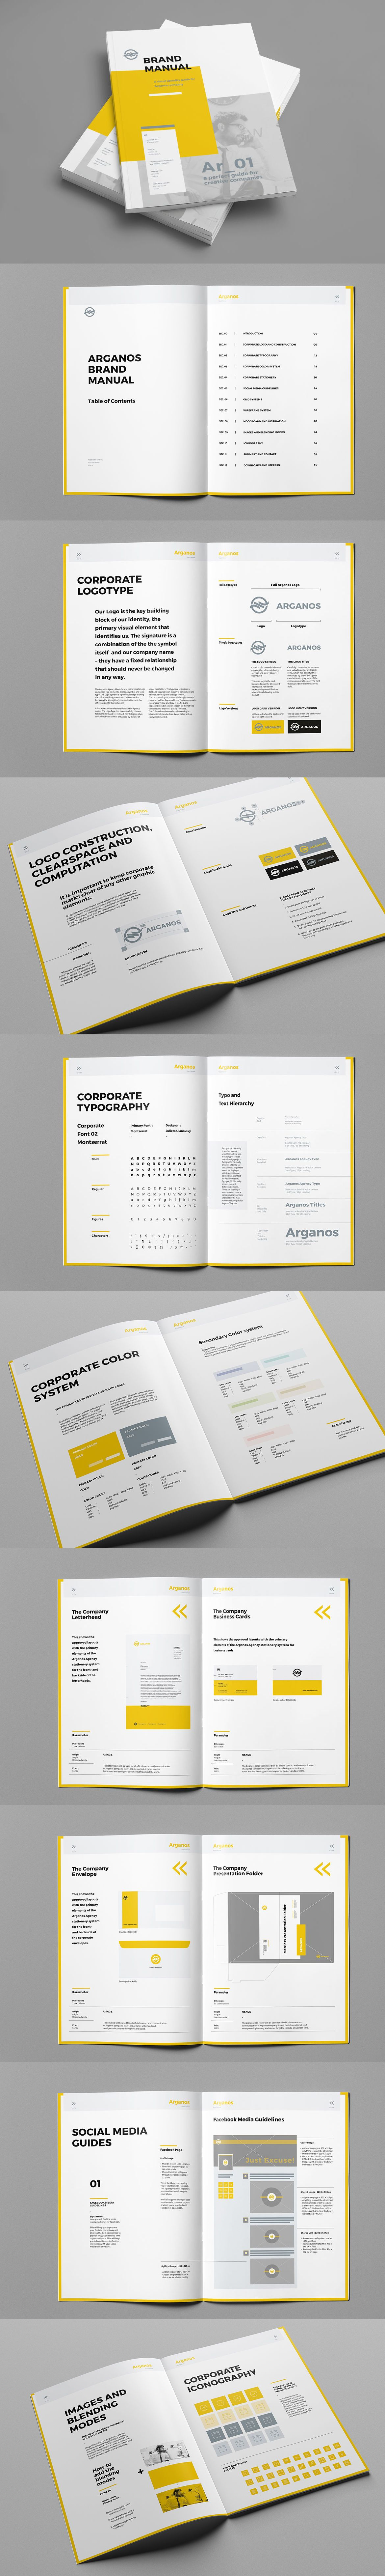 Brand manual template indesign indd 48 pages a4 us letter size manual design templates 10 professional brand manual templates to promote brand image business manual template hr policy manual template hr manual spiritdancerdesigns Image collections